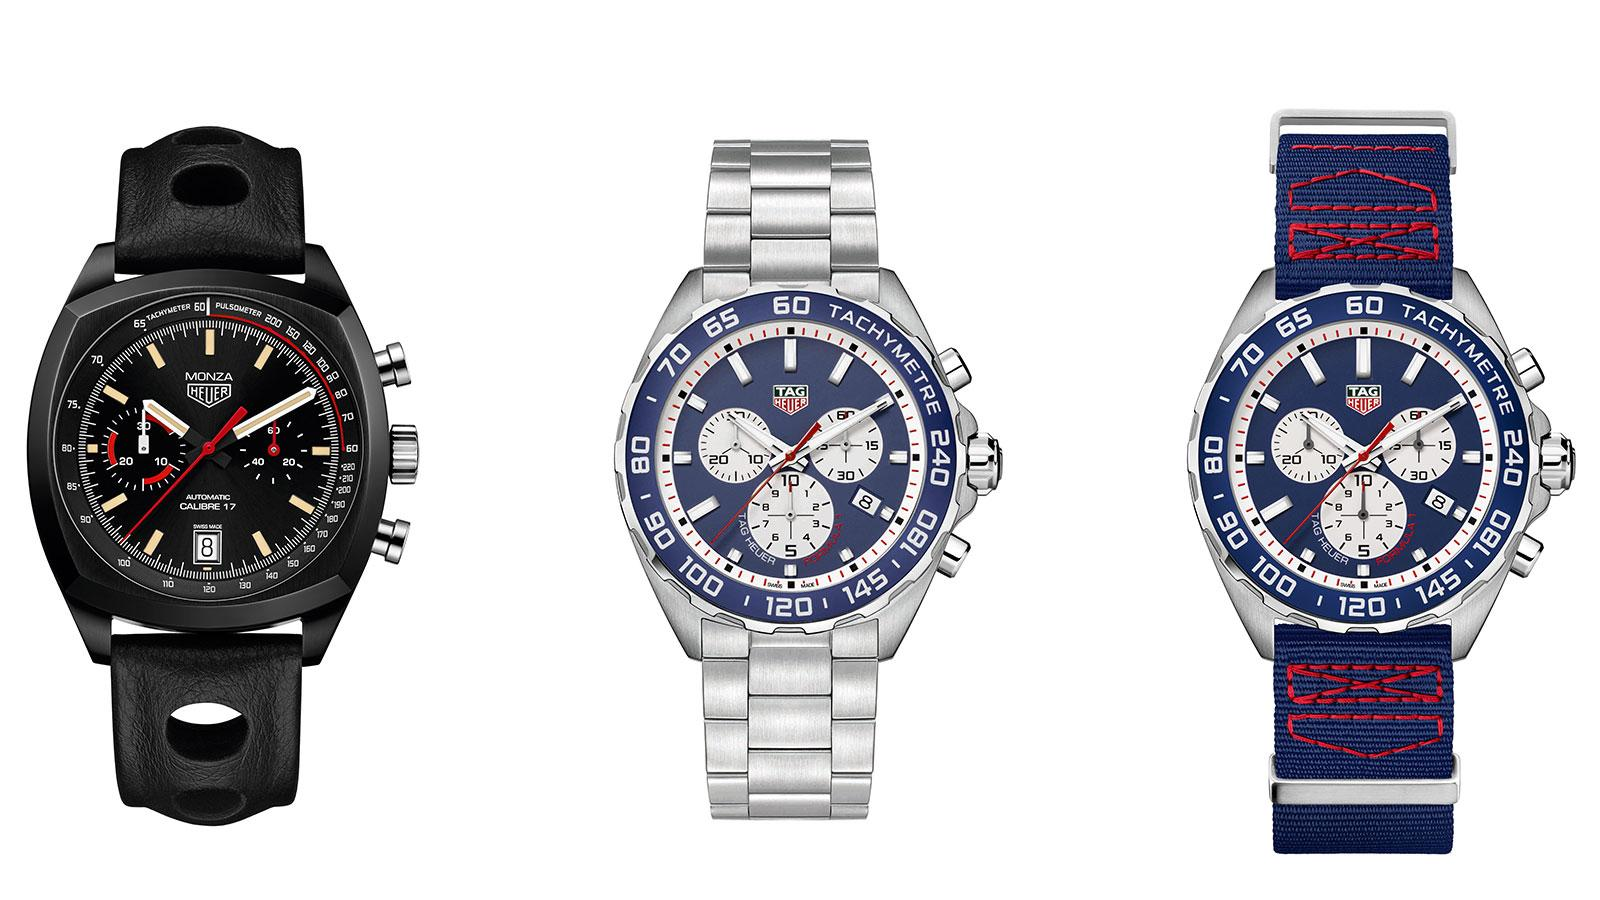 Tag Heuer recently debuted its new Monza (left) and Red Bull Racing Formula One timepieces (two on right).